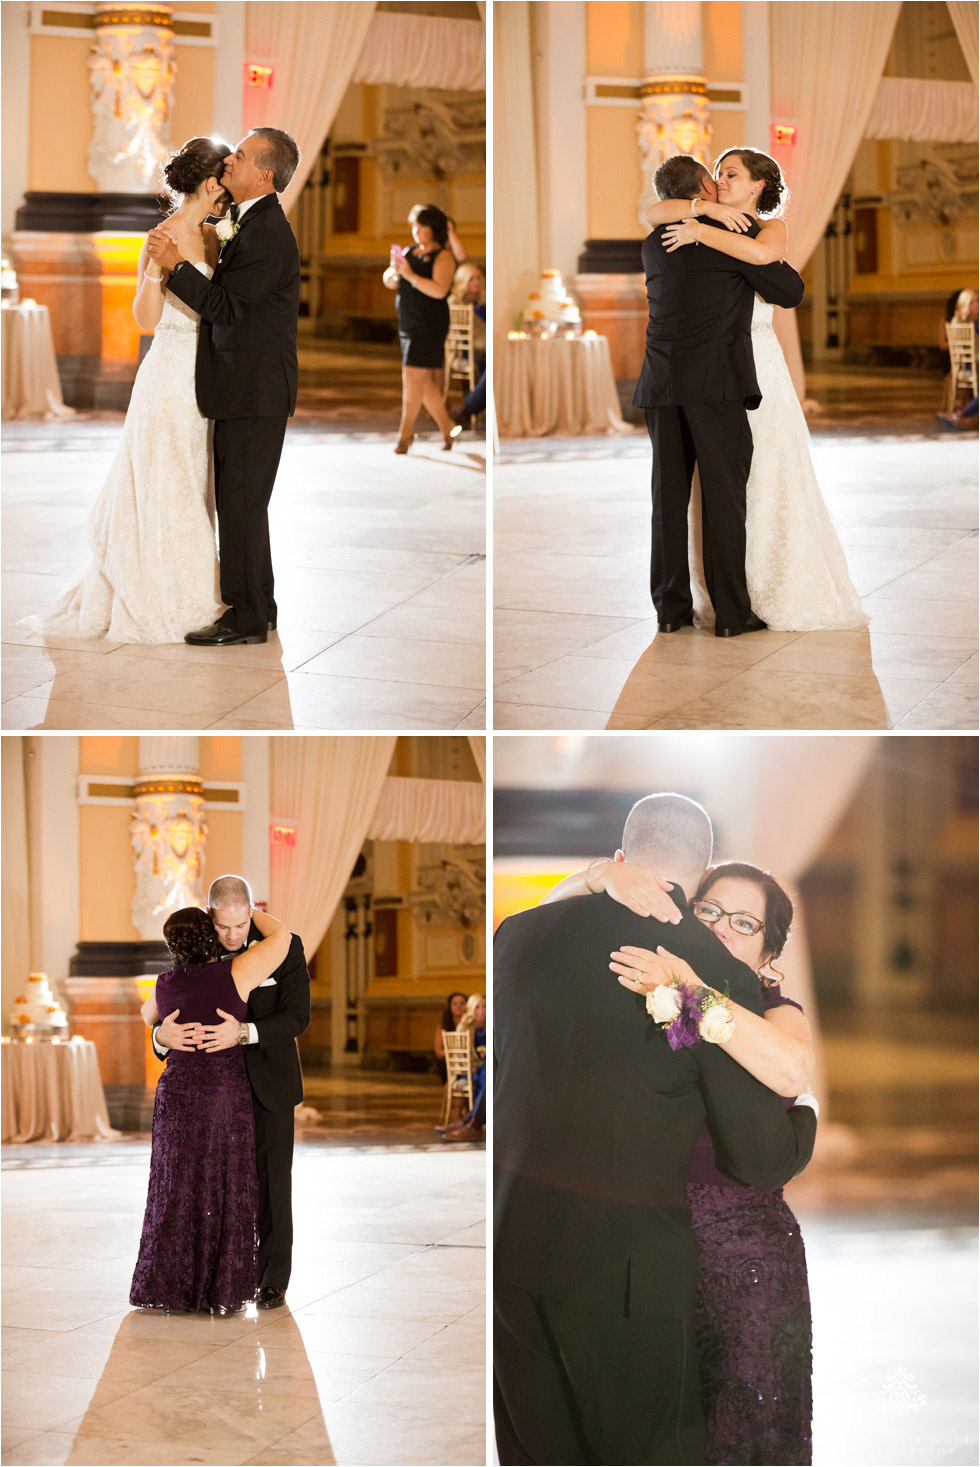 Father-daughter and mother-son dance at Please Touch Museum in Hamilton hall in Philadelphia, Pennsylvania - Blog of Nina Hintringer Photography - Wedding Photography, Wedding Reportage and Destination Weddings